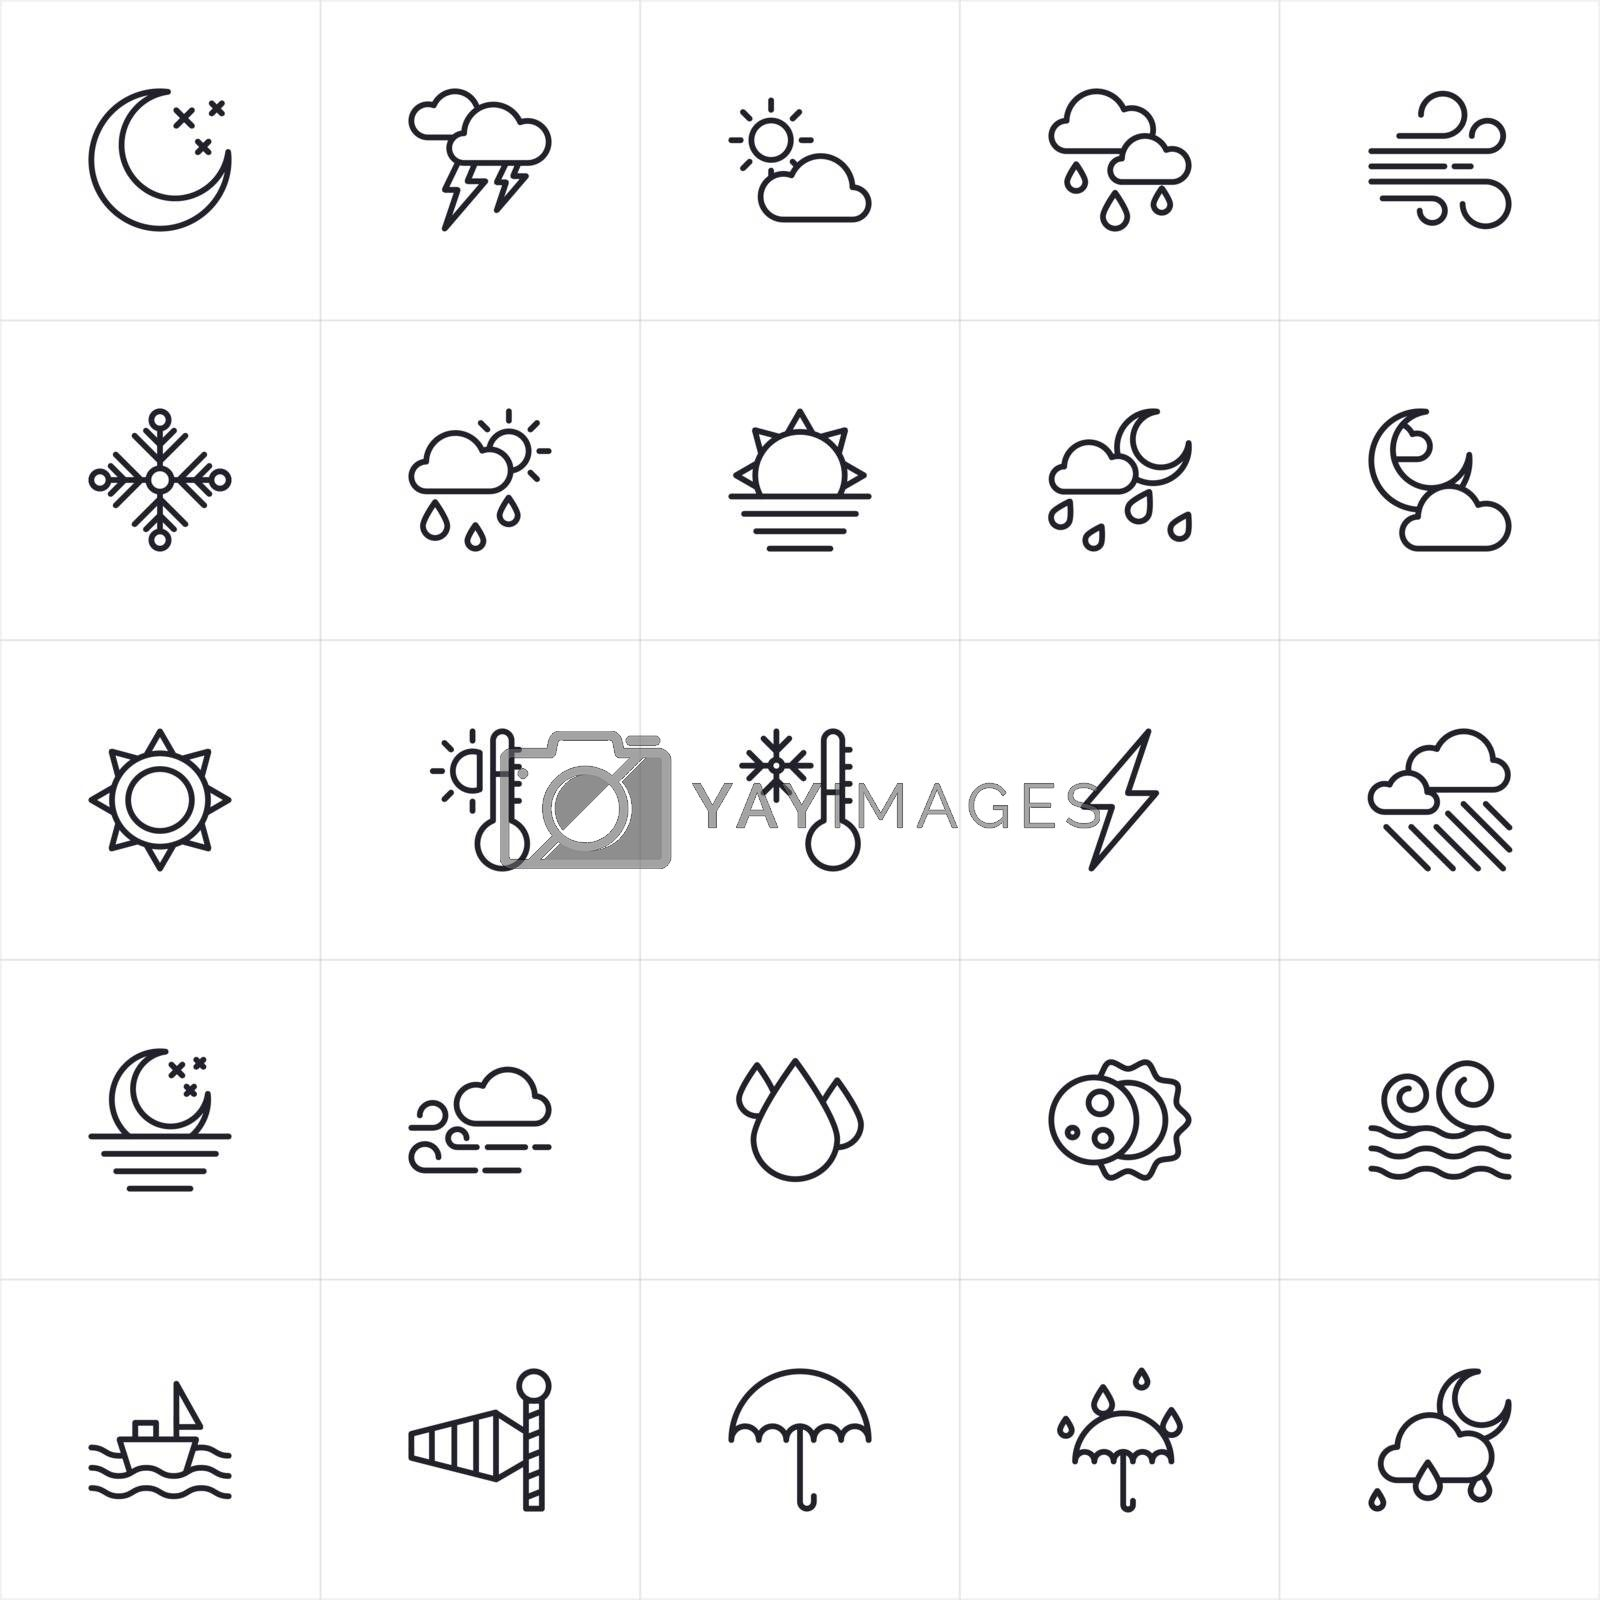 Vector illustration of weather icons set in flat style.